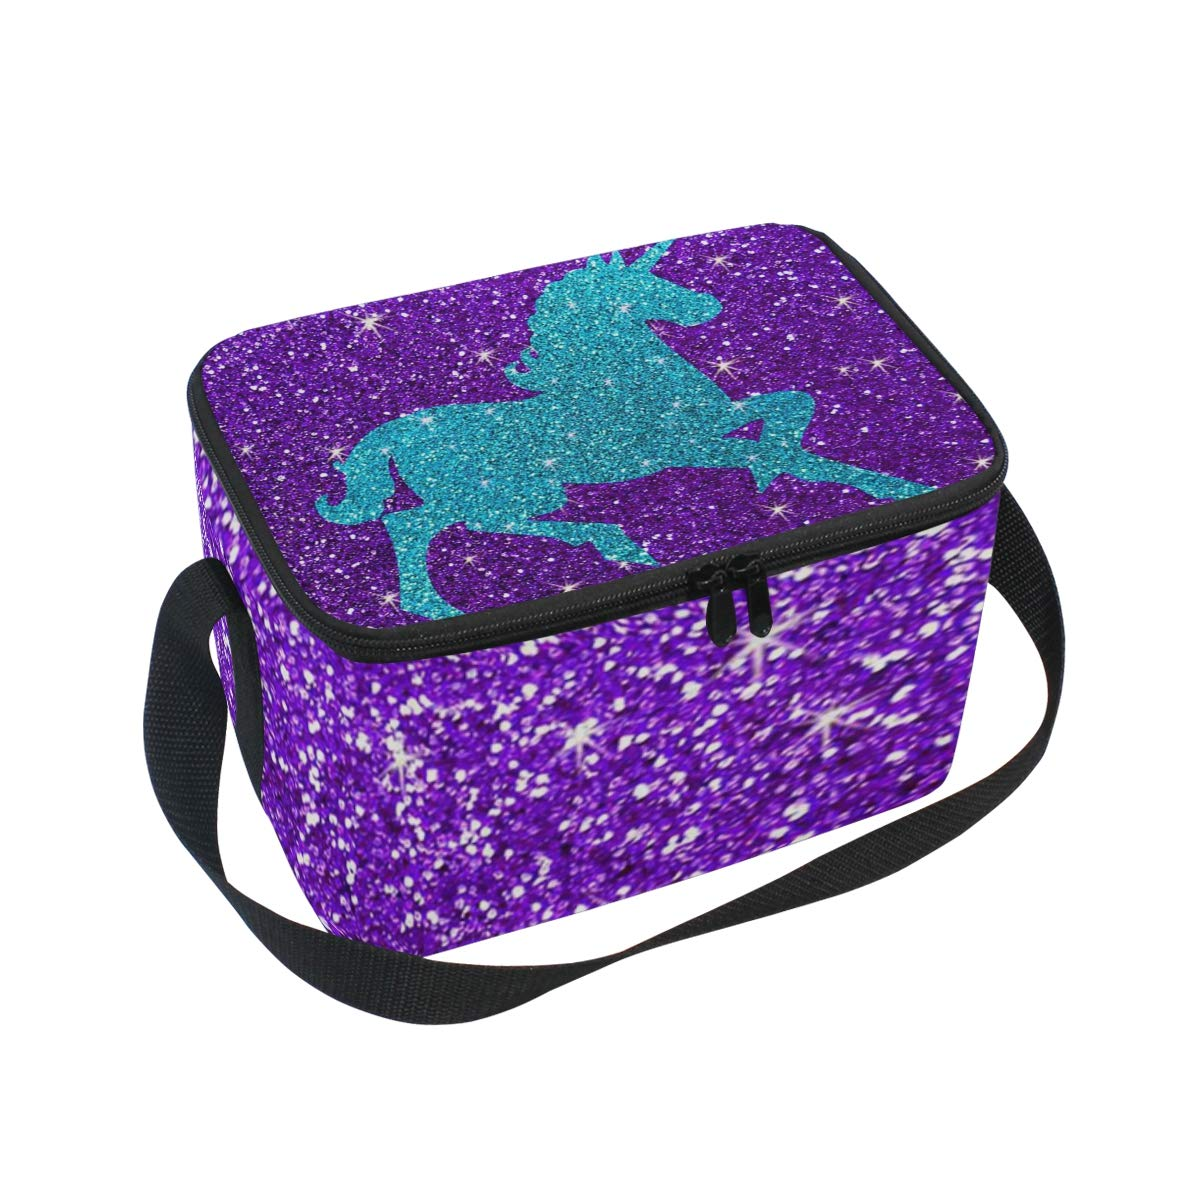 970b602c516f Amazon.com: Lunch Box Insulated Lunch Bag Glitter Unicorn Cooler Bag ...